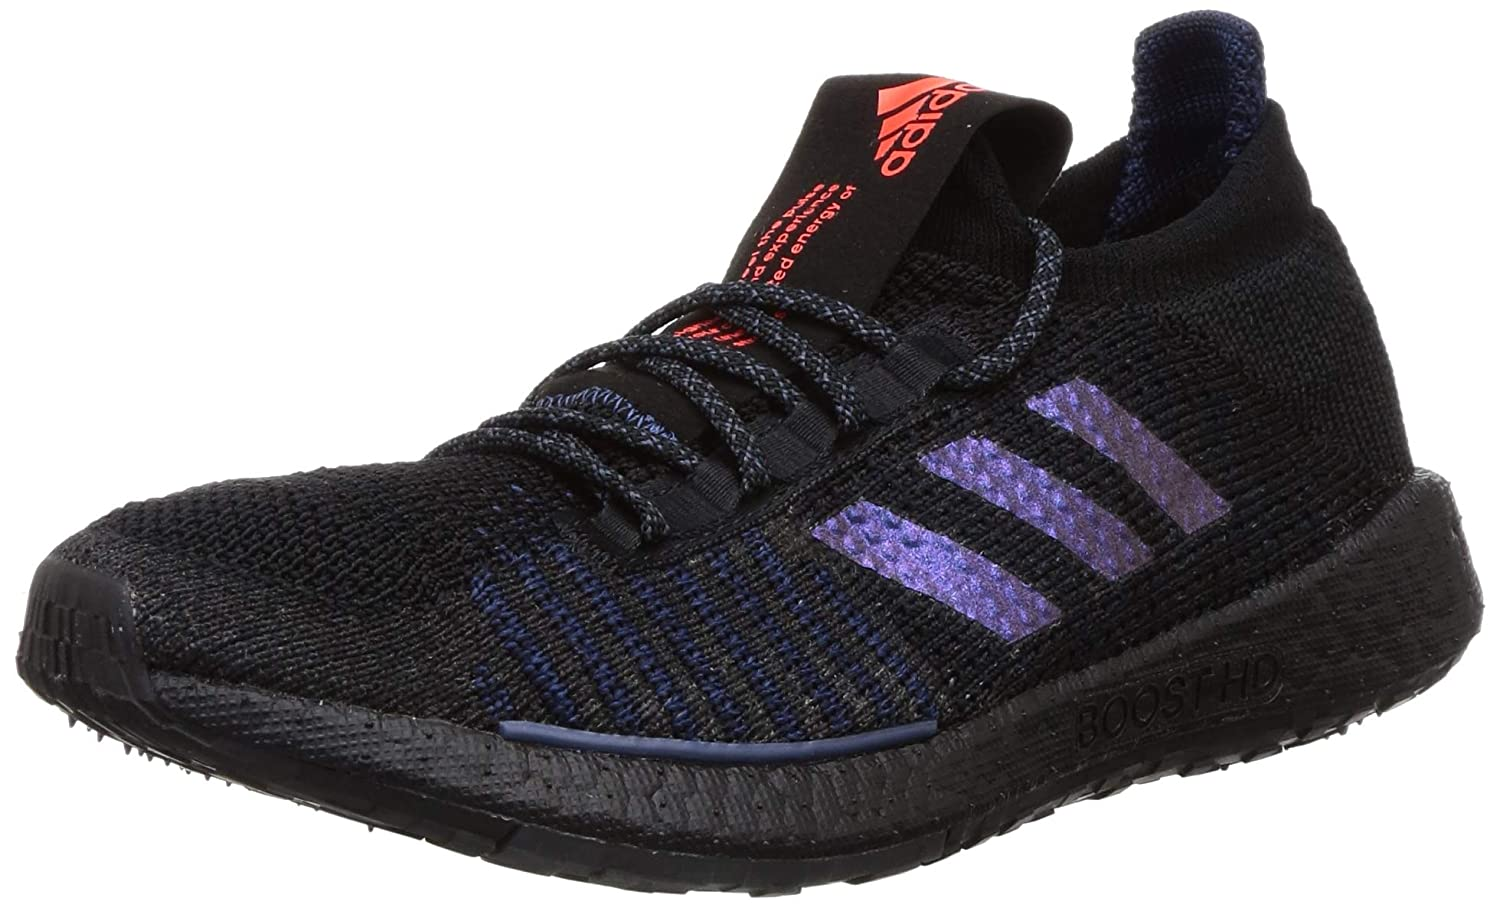 Pulseboost Hd W Running Shoes